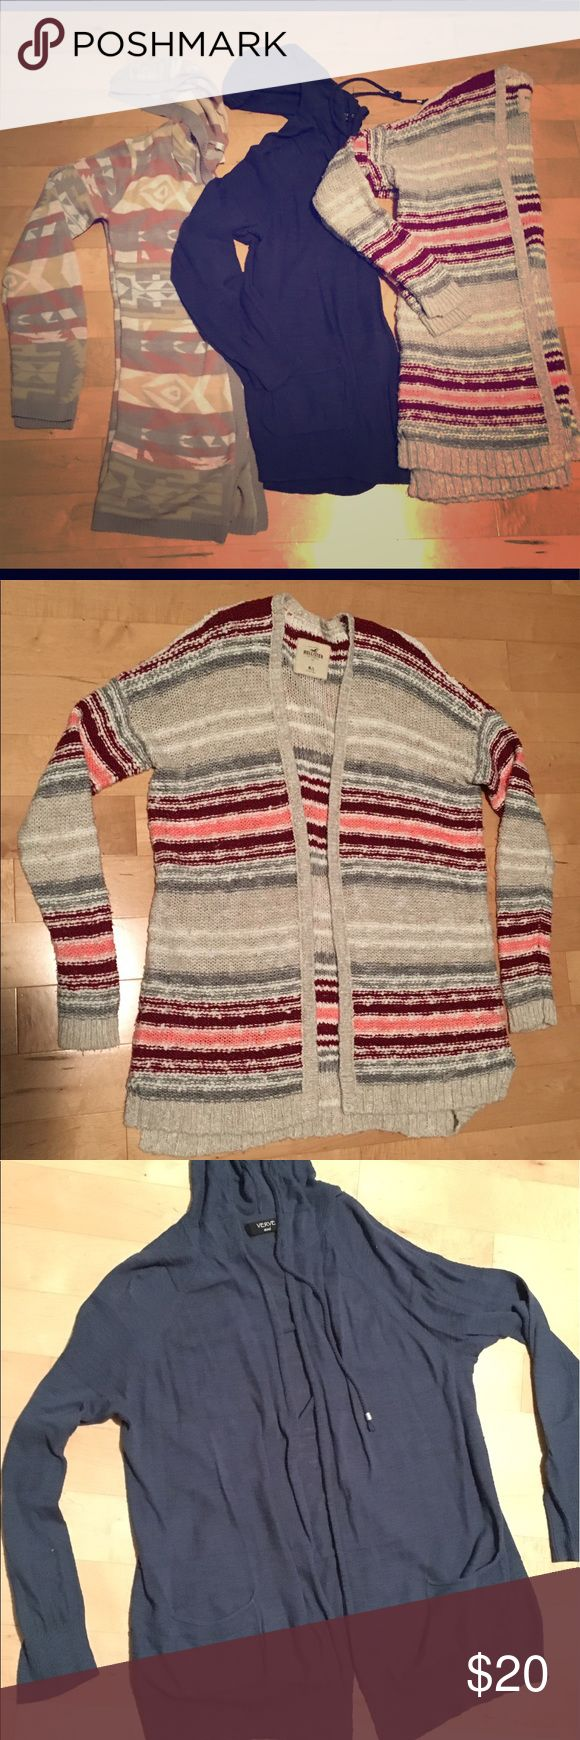 "3 for 20$ Long Sweater Bundle Verve Ami navy open sweater with hoodie and pockets (stitching has strips) – size large but would fit medium ""Say What?"" Tribal print open sweater size M (tan, gray, salmon, and white)  Hollister striped pink, tan, red, and white sweater, supper thick and fizzy, has small hole on shoulder but not very noticeable and can be easily fixed. Size ""M/L"" Trades and reasonable offers are welcome ☺ All in used/good condition, no rips, pilling, or pulls; smoke free home…"